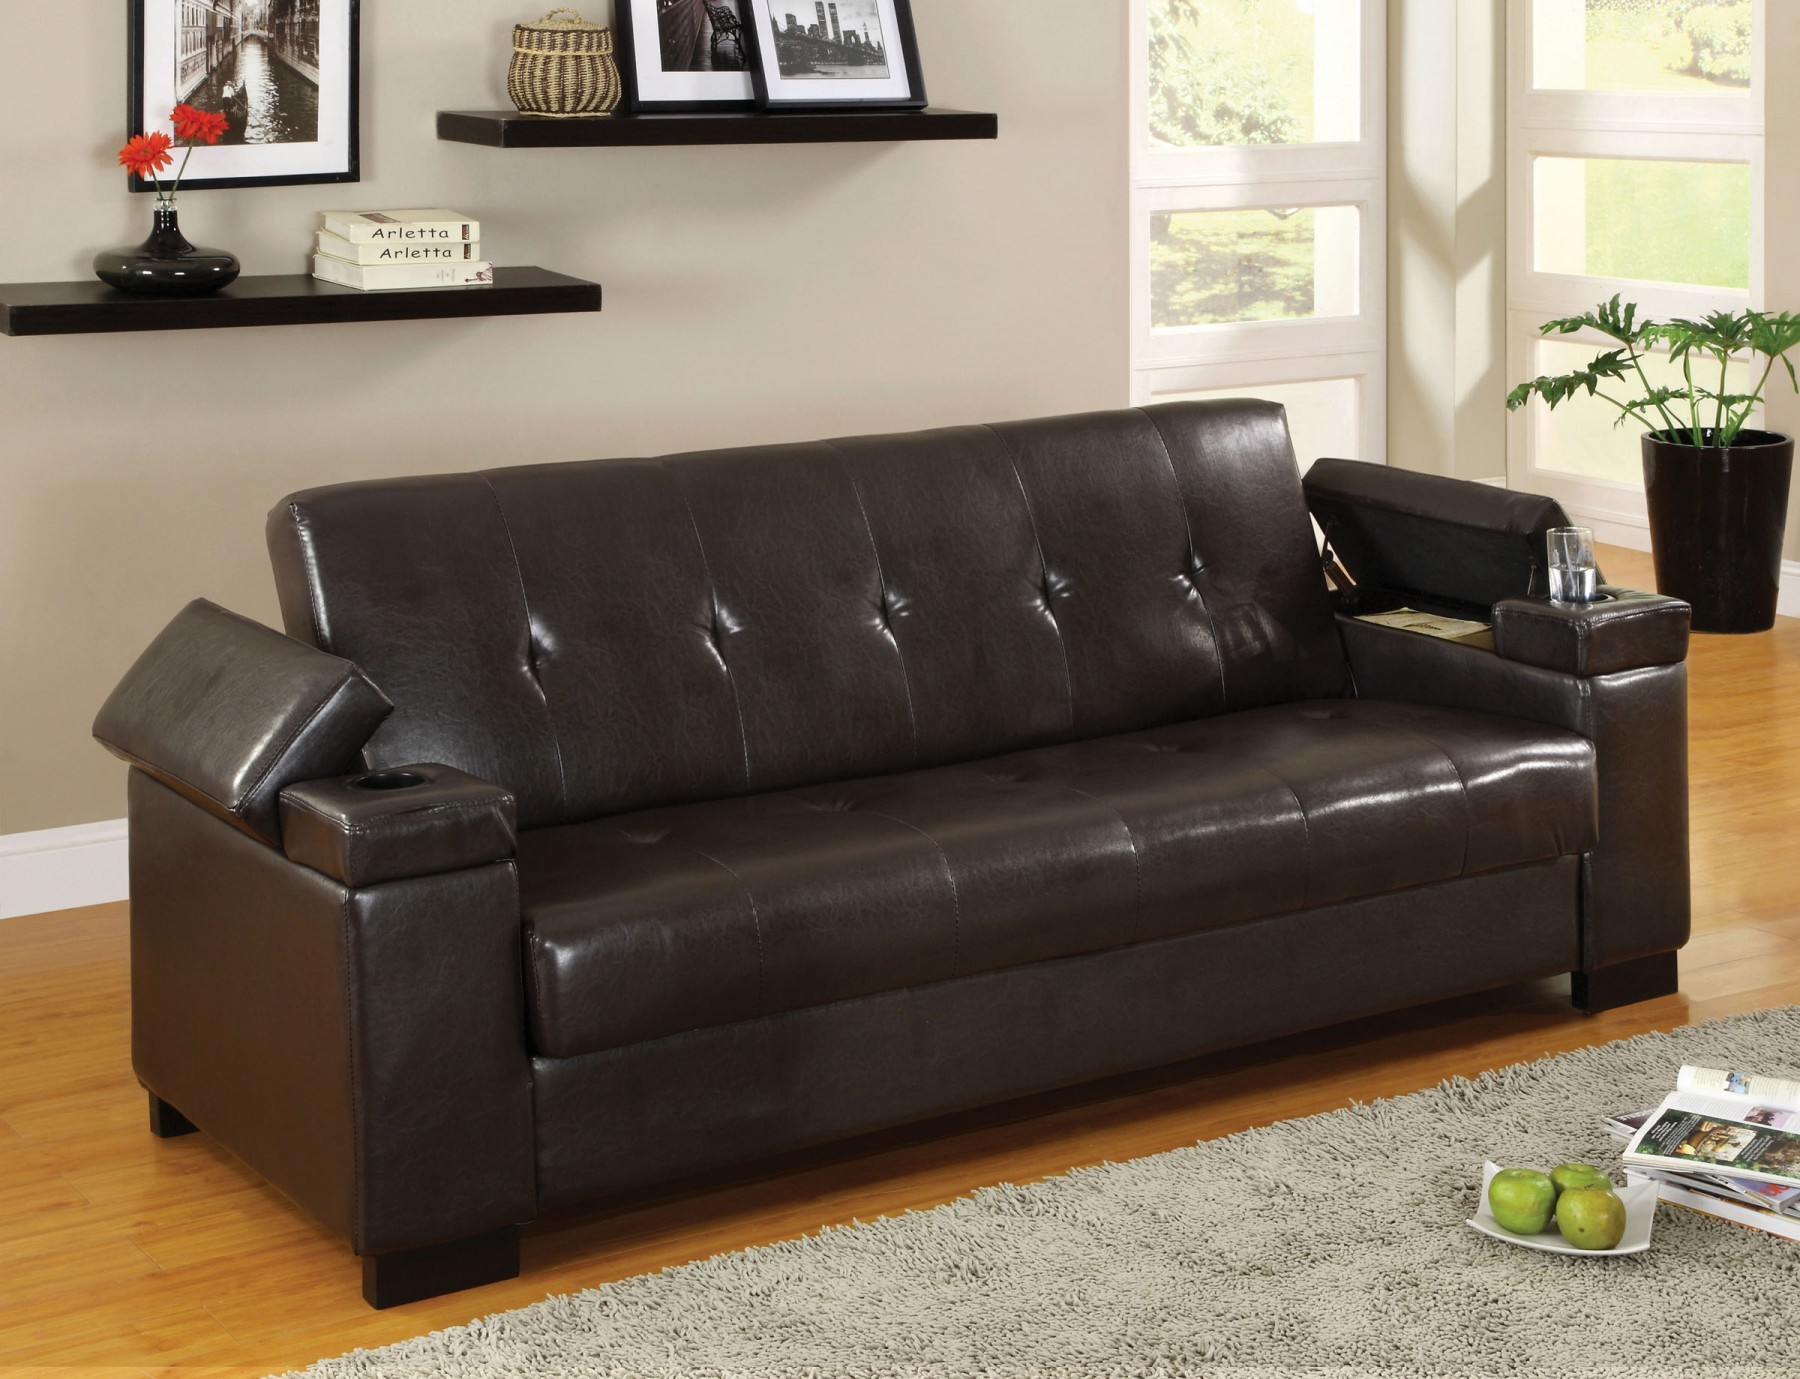 Couch Bed With Storage Cup Holder Futon Sofa Bed Avenue Greene Julia Cup Holder